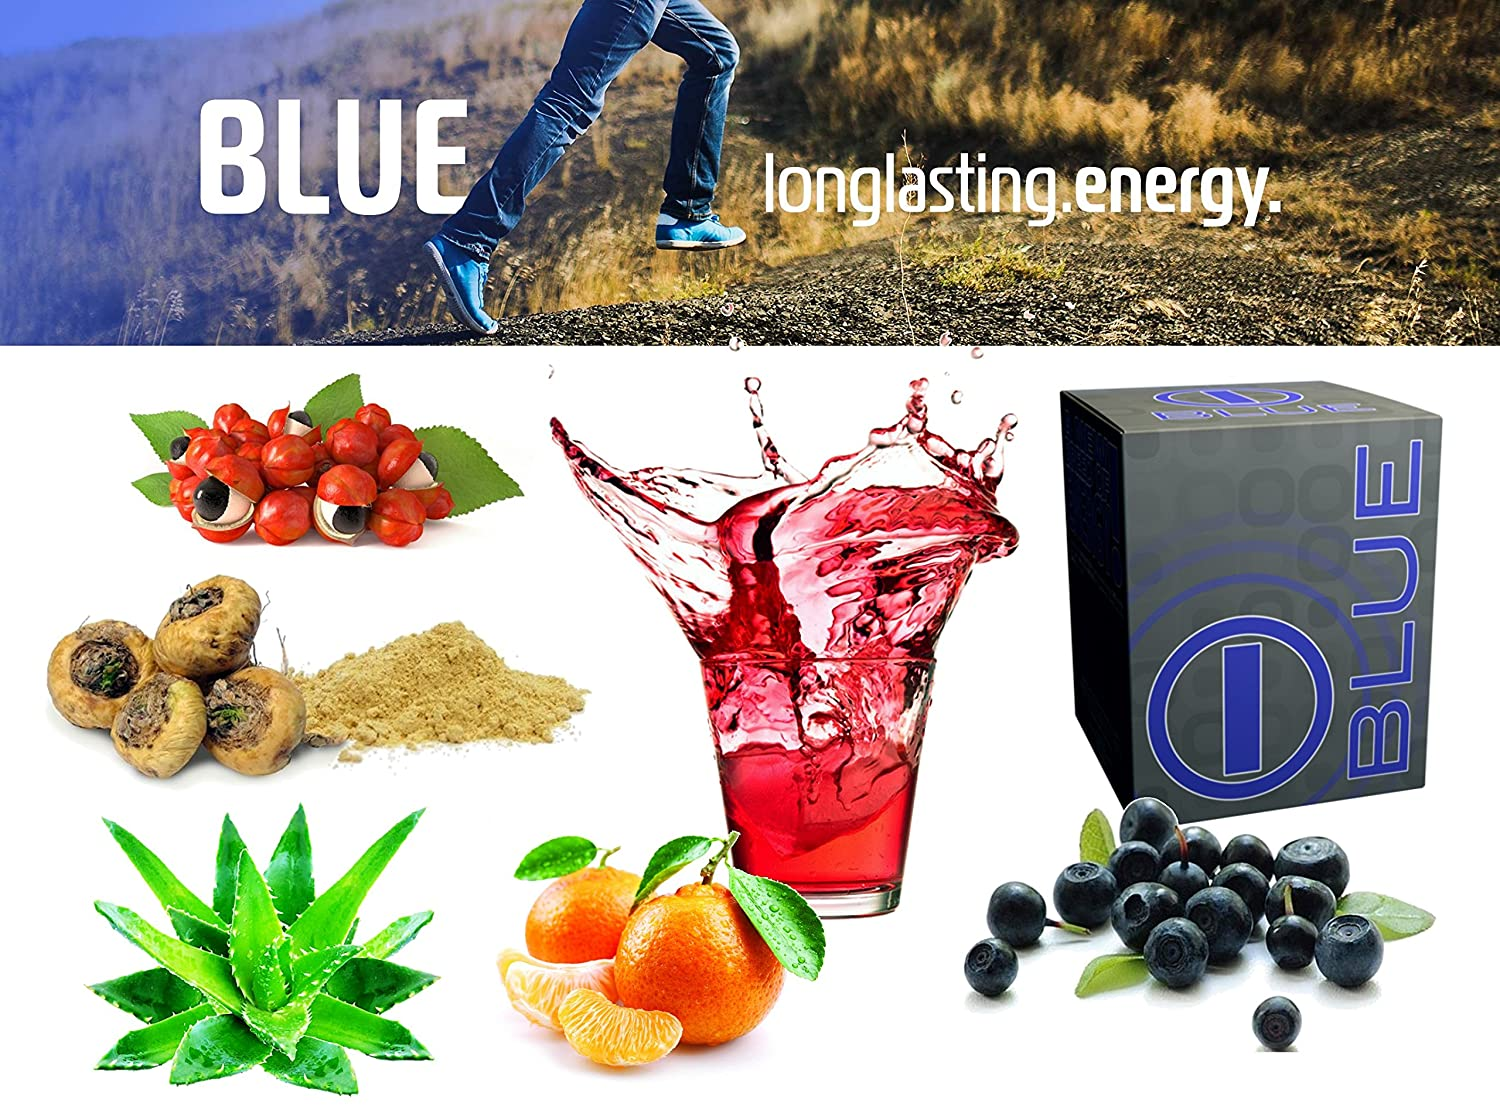 Amazon.com: Blue Energy Blend bhip Drink-Vitamins+Mineral+Health Care+Fitness+Weight Loss: Health & Personal Care